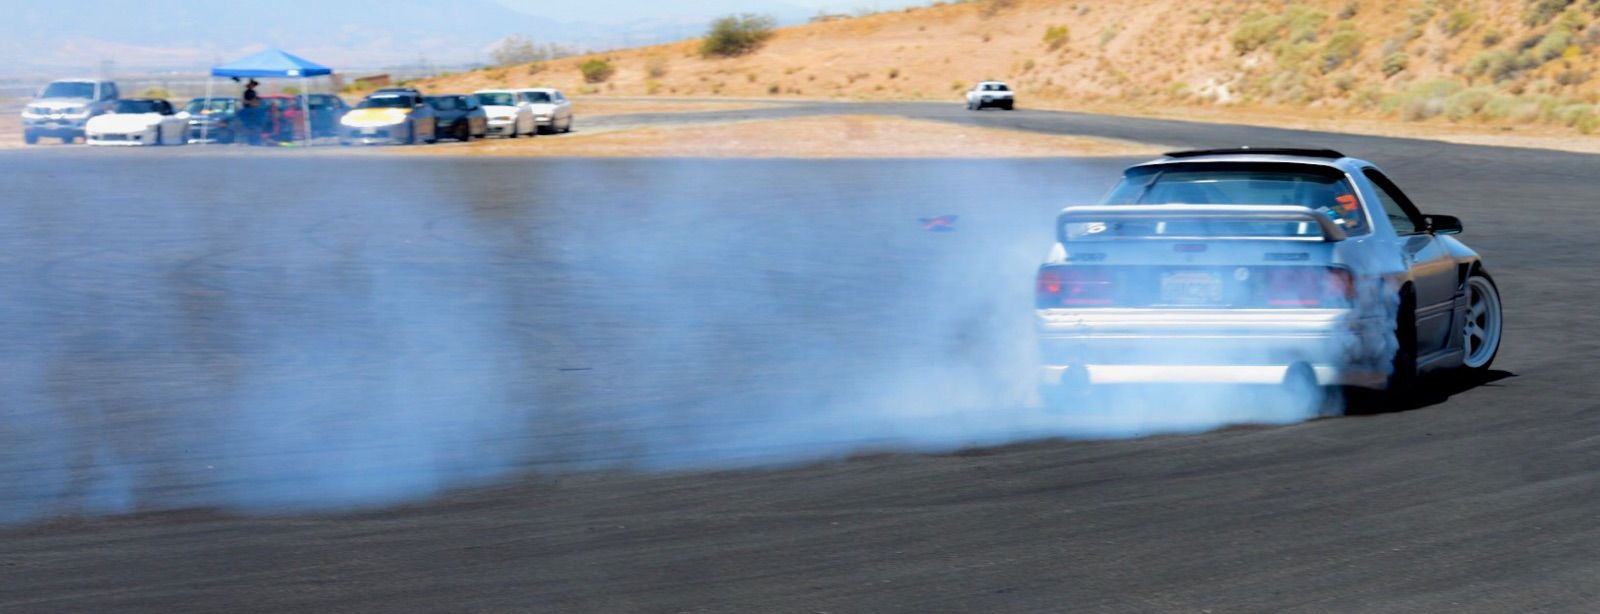 Official Action Shots Only Thread Page 61 Rx7club Com